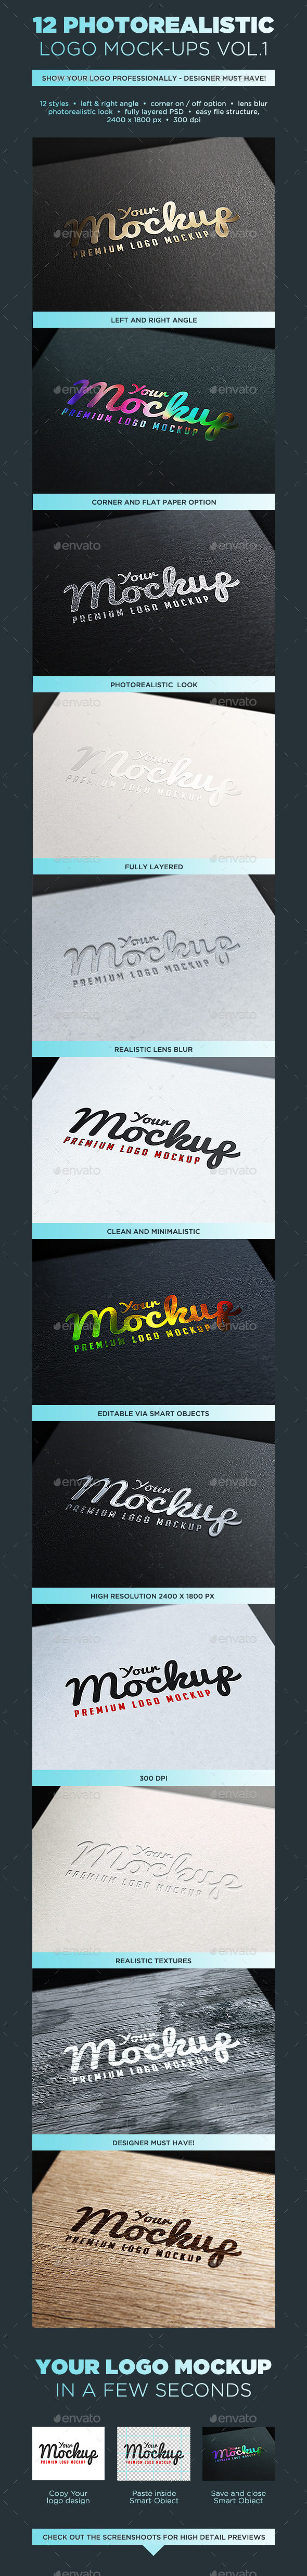 GraphicRiver Your Mockup Logo Mockups VOL.1 10203925